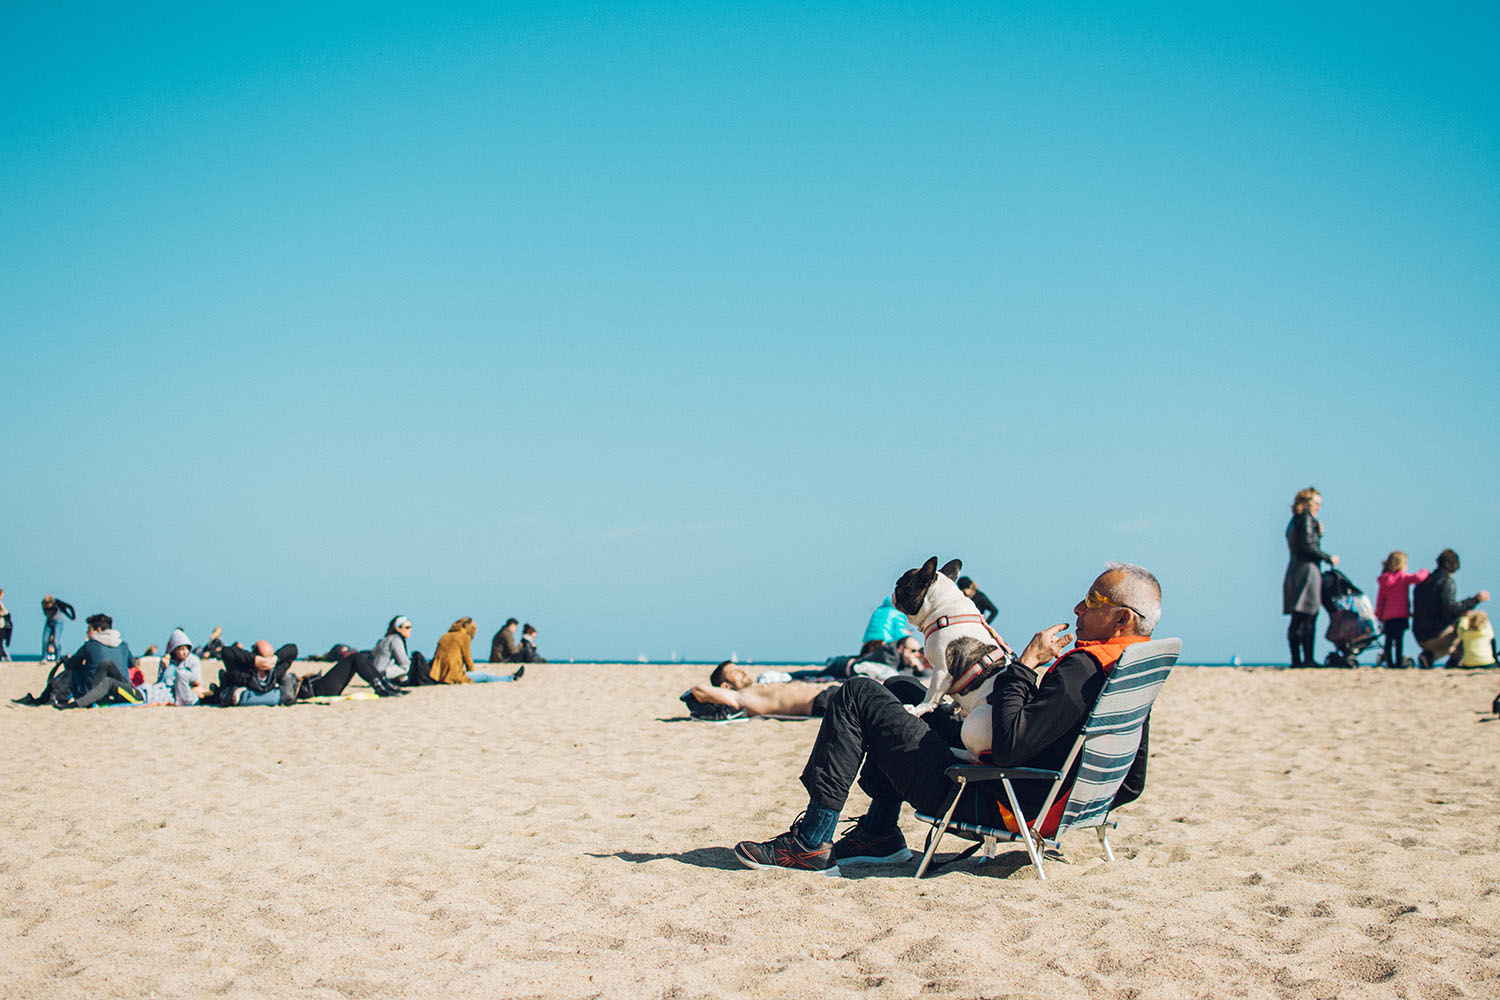 Man sitting in a beach chair with a dog